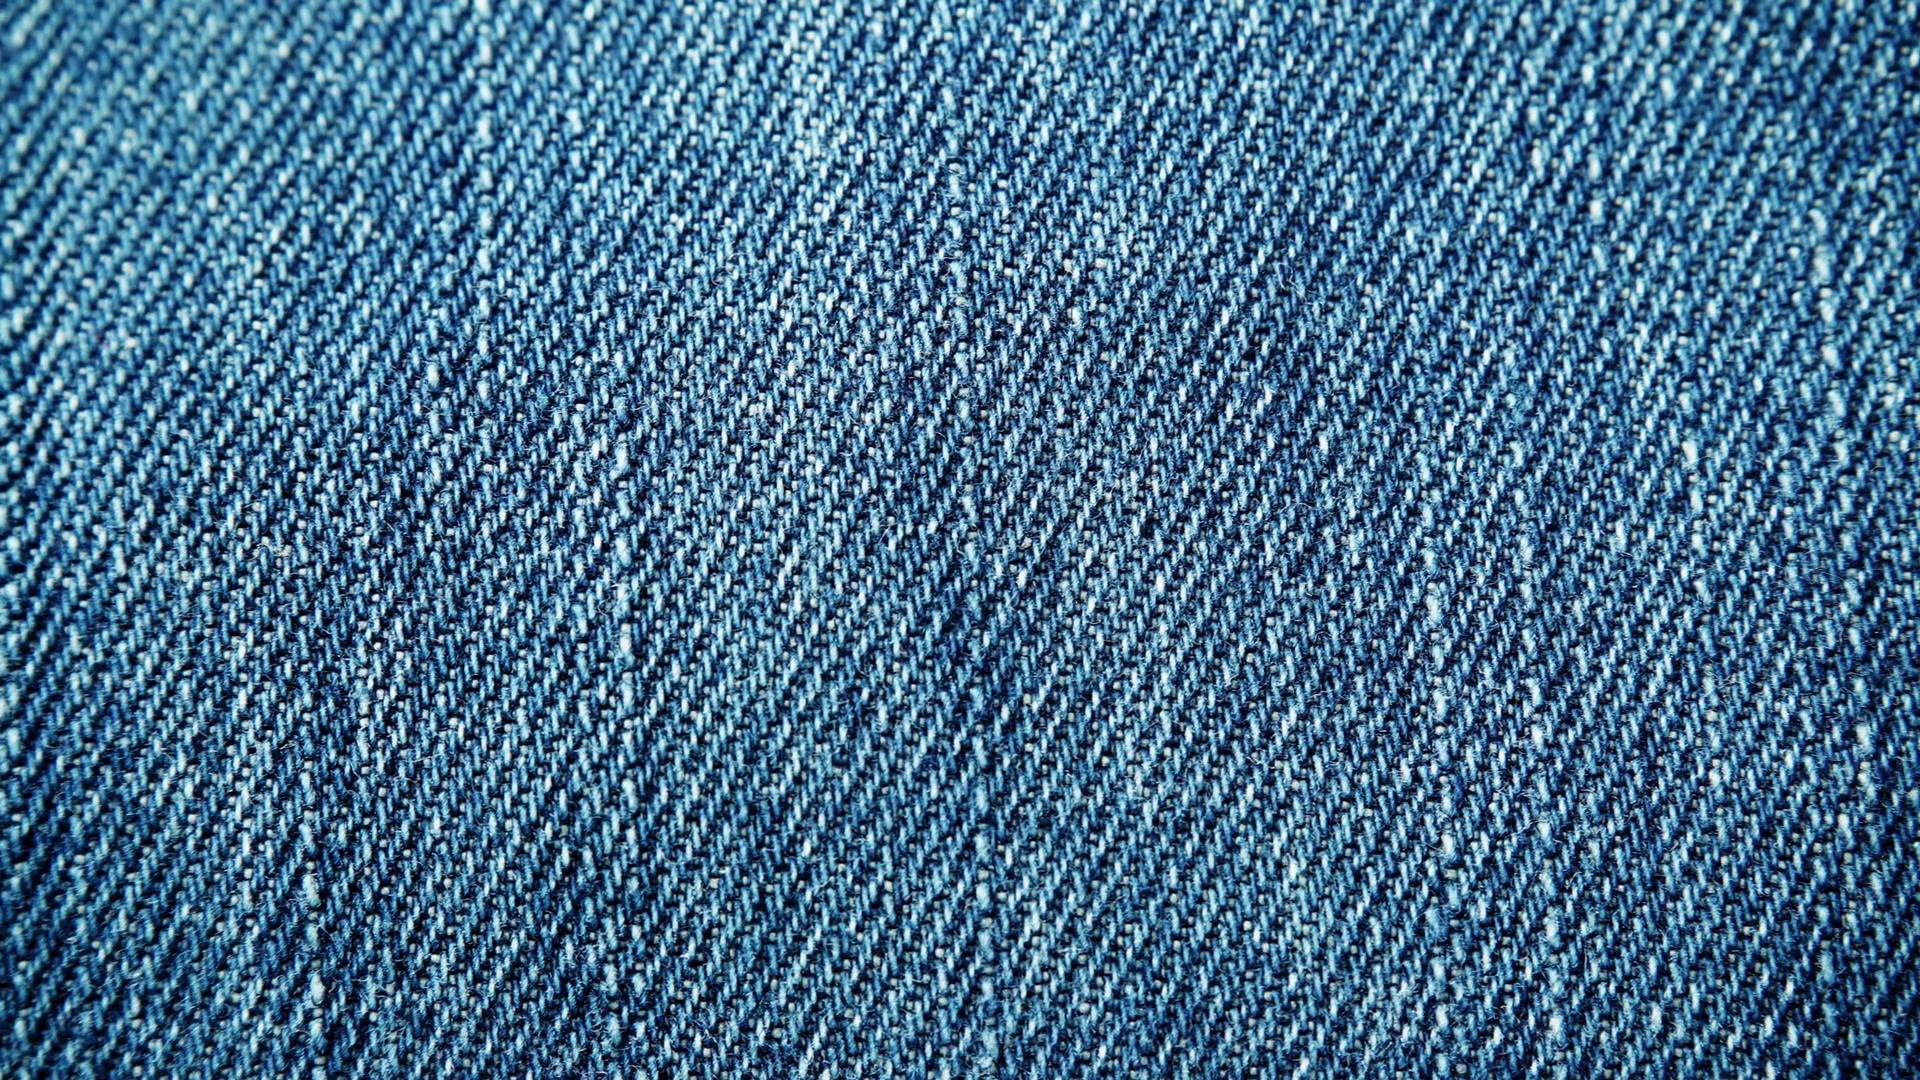 Closeup detail of blue denim jeans, texture background. Dolly sliding shot  4K ProRes HQ codec Stock Video Footage.